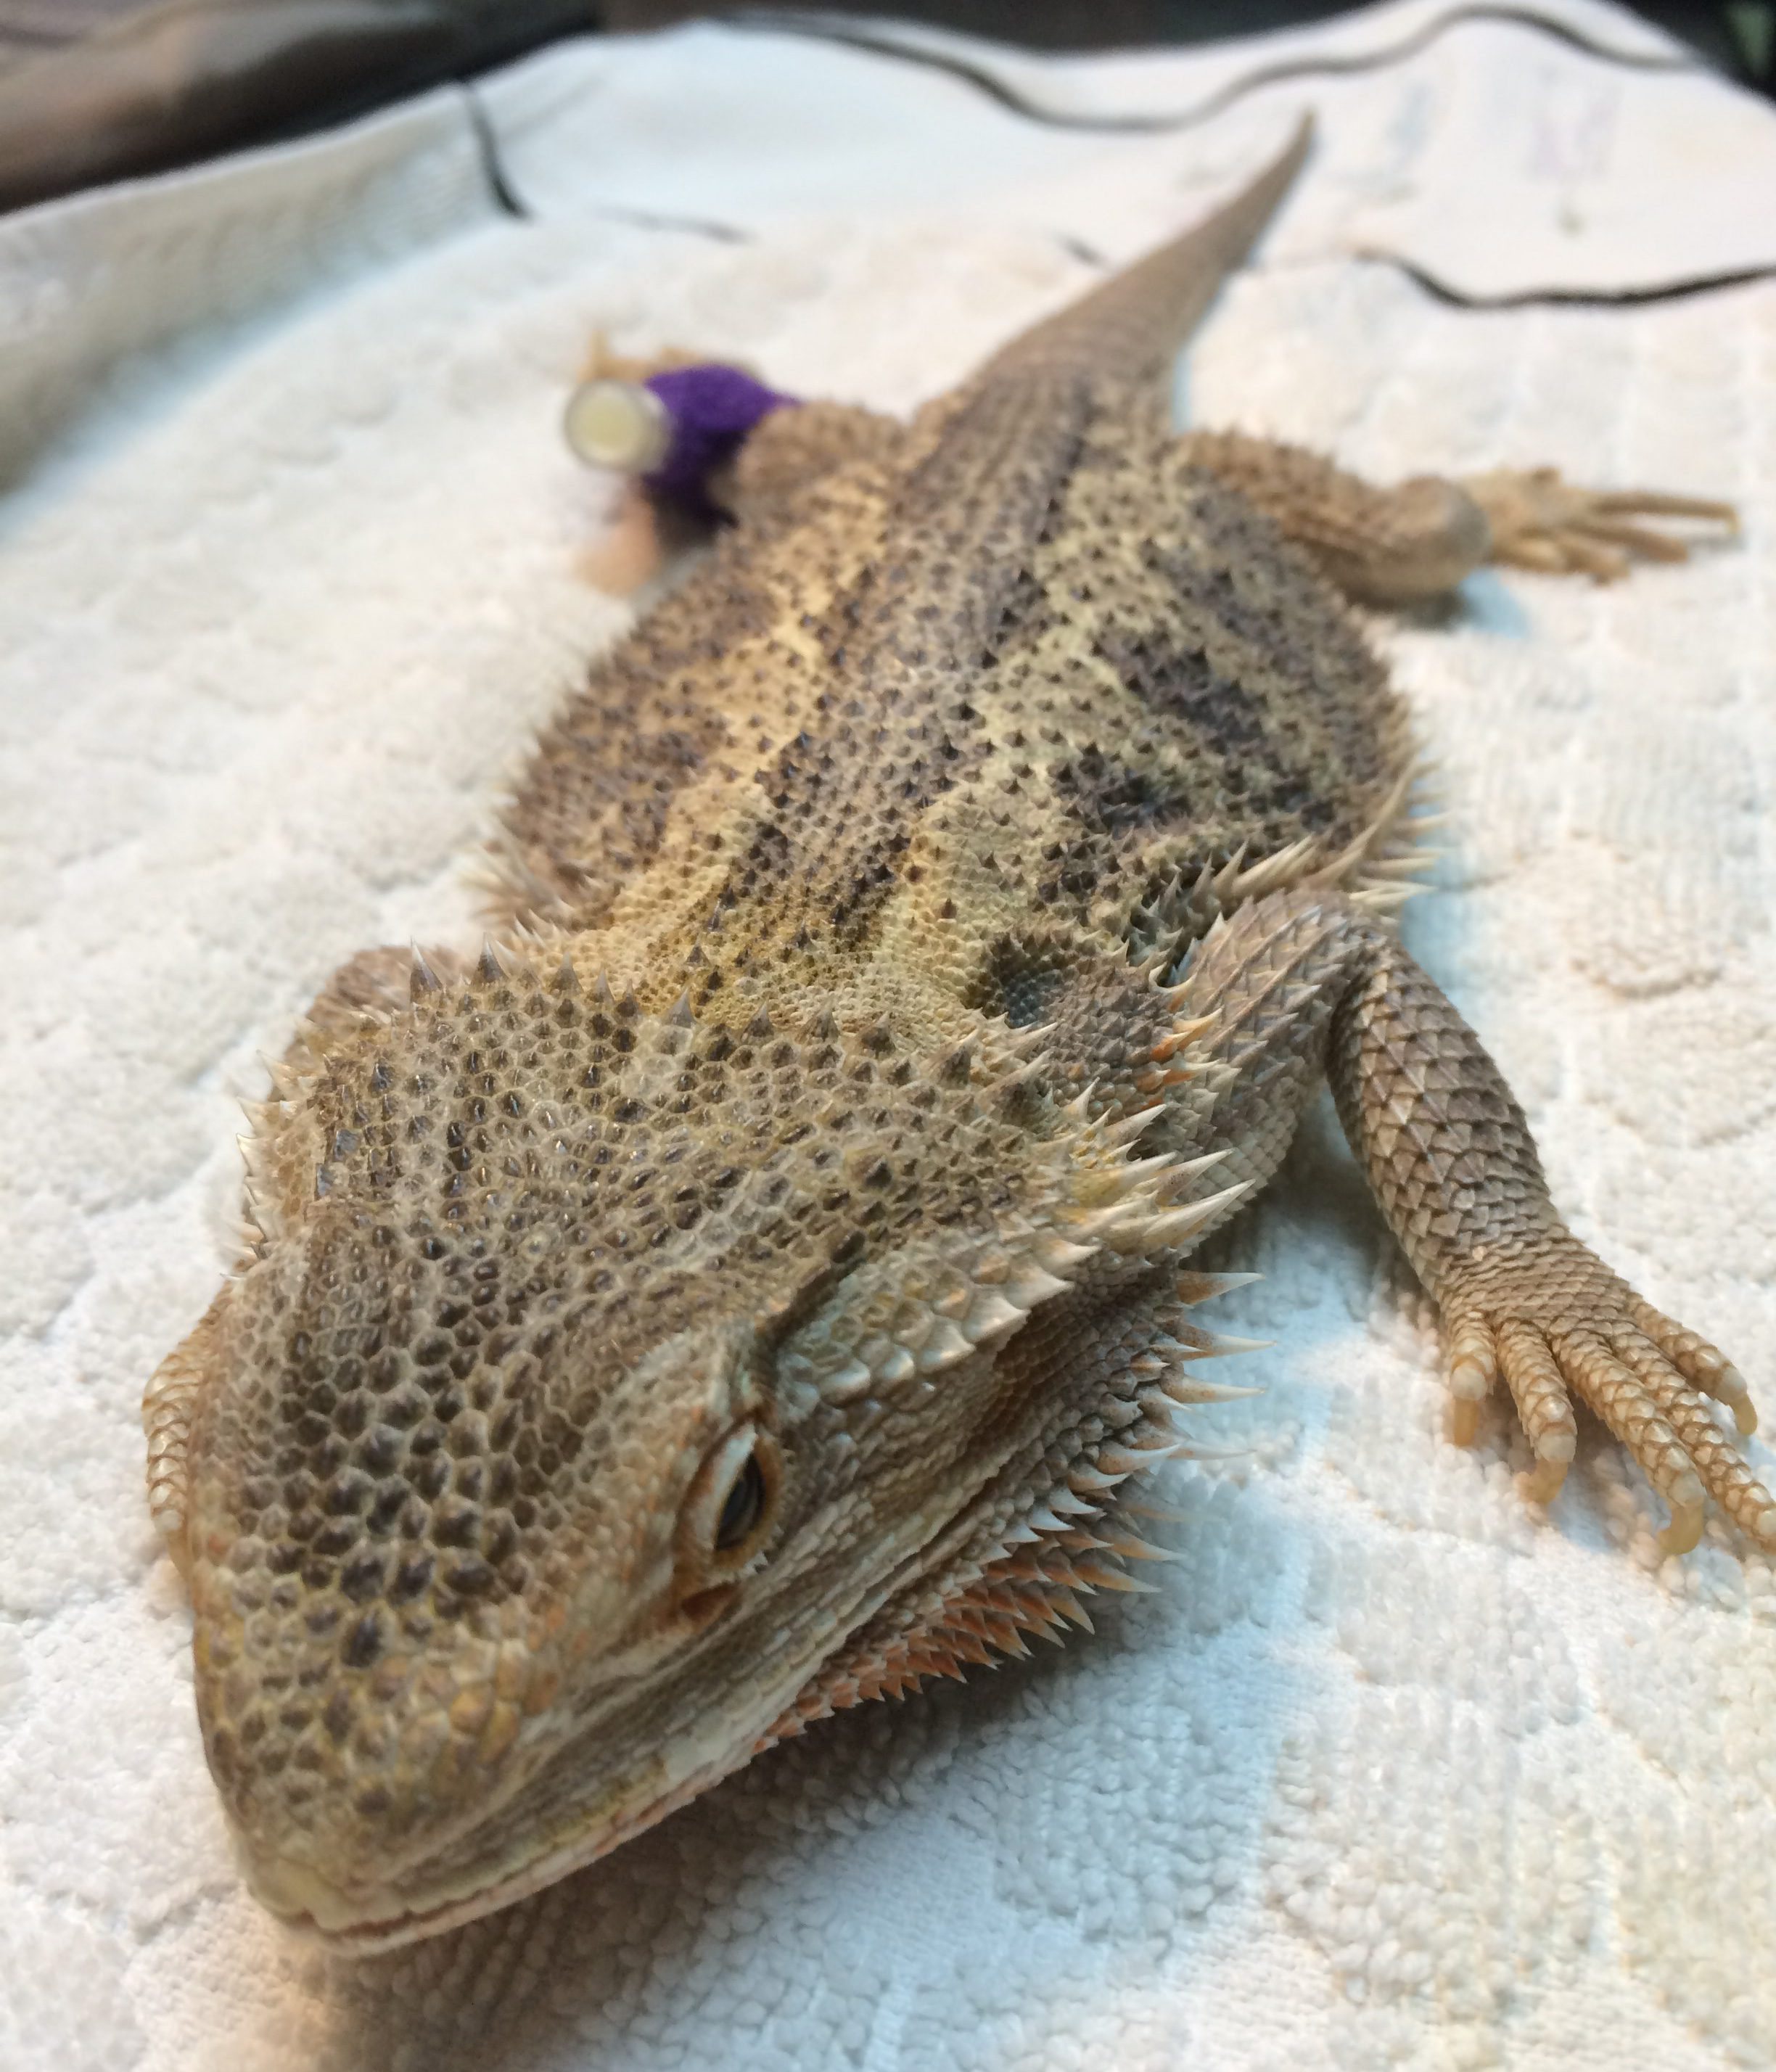 """Here is our recipient Bearded Dragon """"Butterscotch"""" who is weak from a very low red cell count of uncertain origin. She has been sedated to place her intraosseous catheter, which is inserted into a bone, as IV catheters are challenging to place, especially in sick patients. The process was made more comfortable by the use of a lidocaine (local) block."""